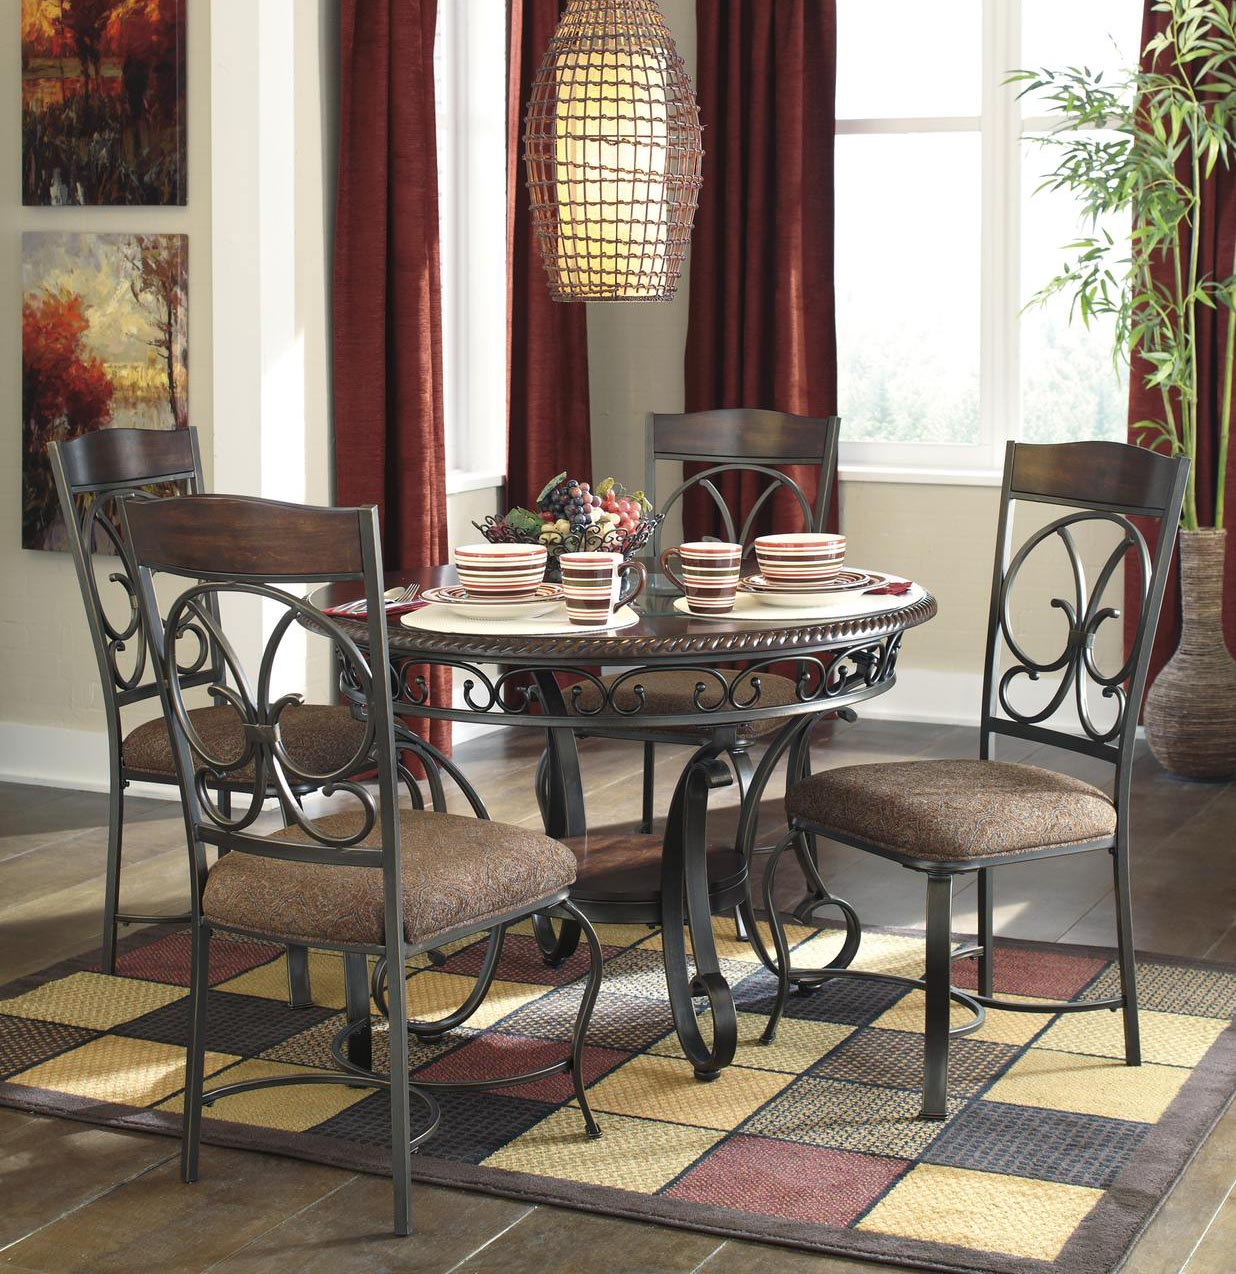 Glambrey 5pc Round Dining Room Set in Brown by Dining Rooms Outlet